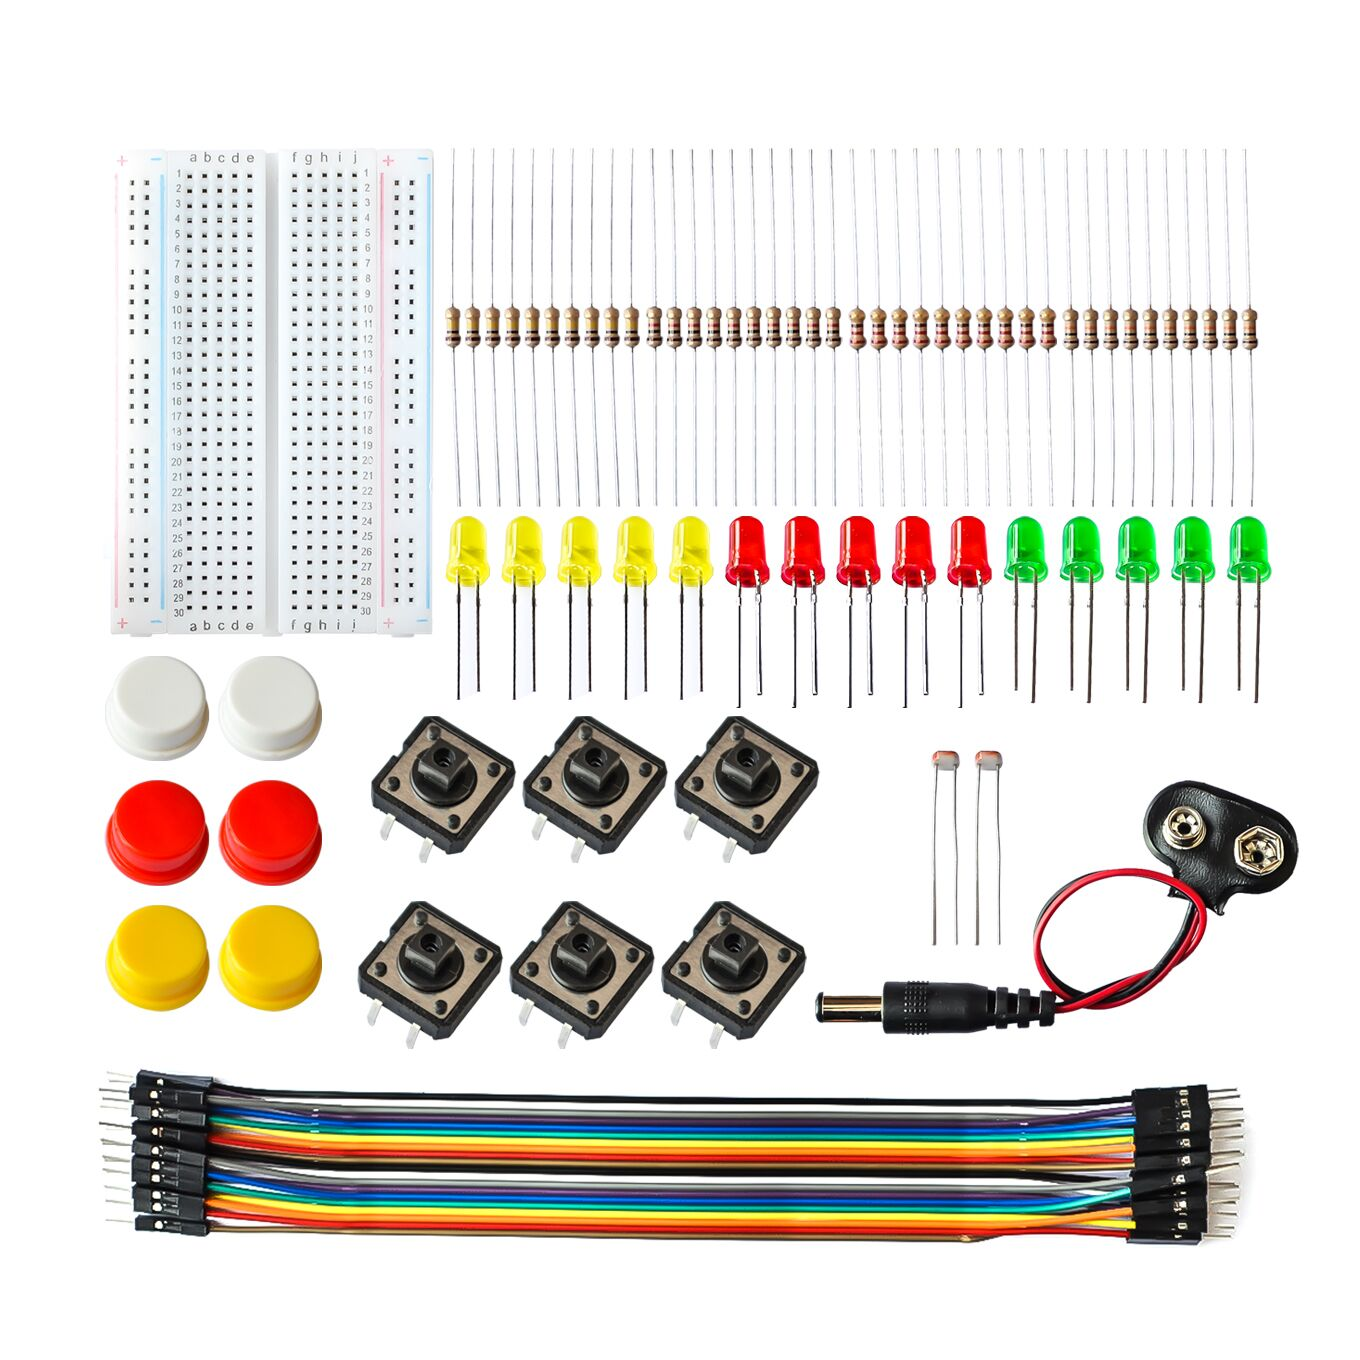 best breadboard uno r3 brands and get free shipping - 1aihb5ll